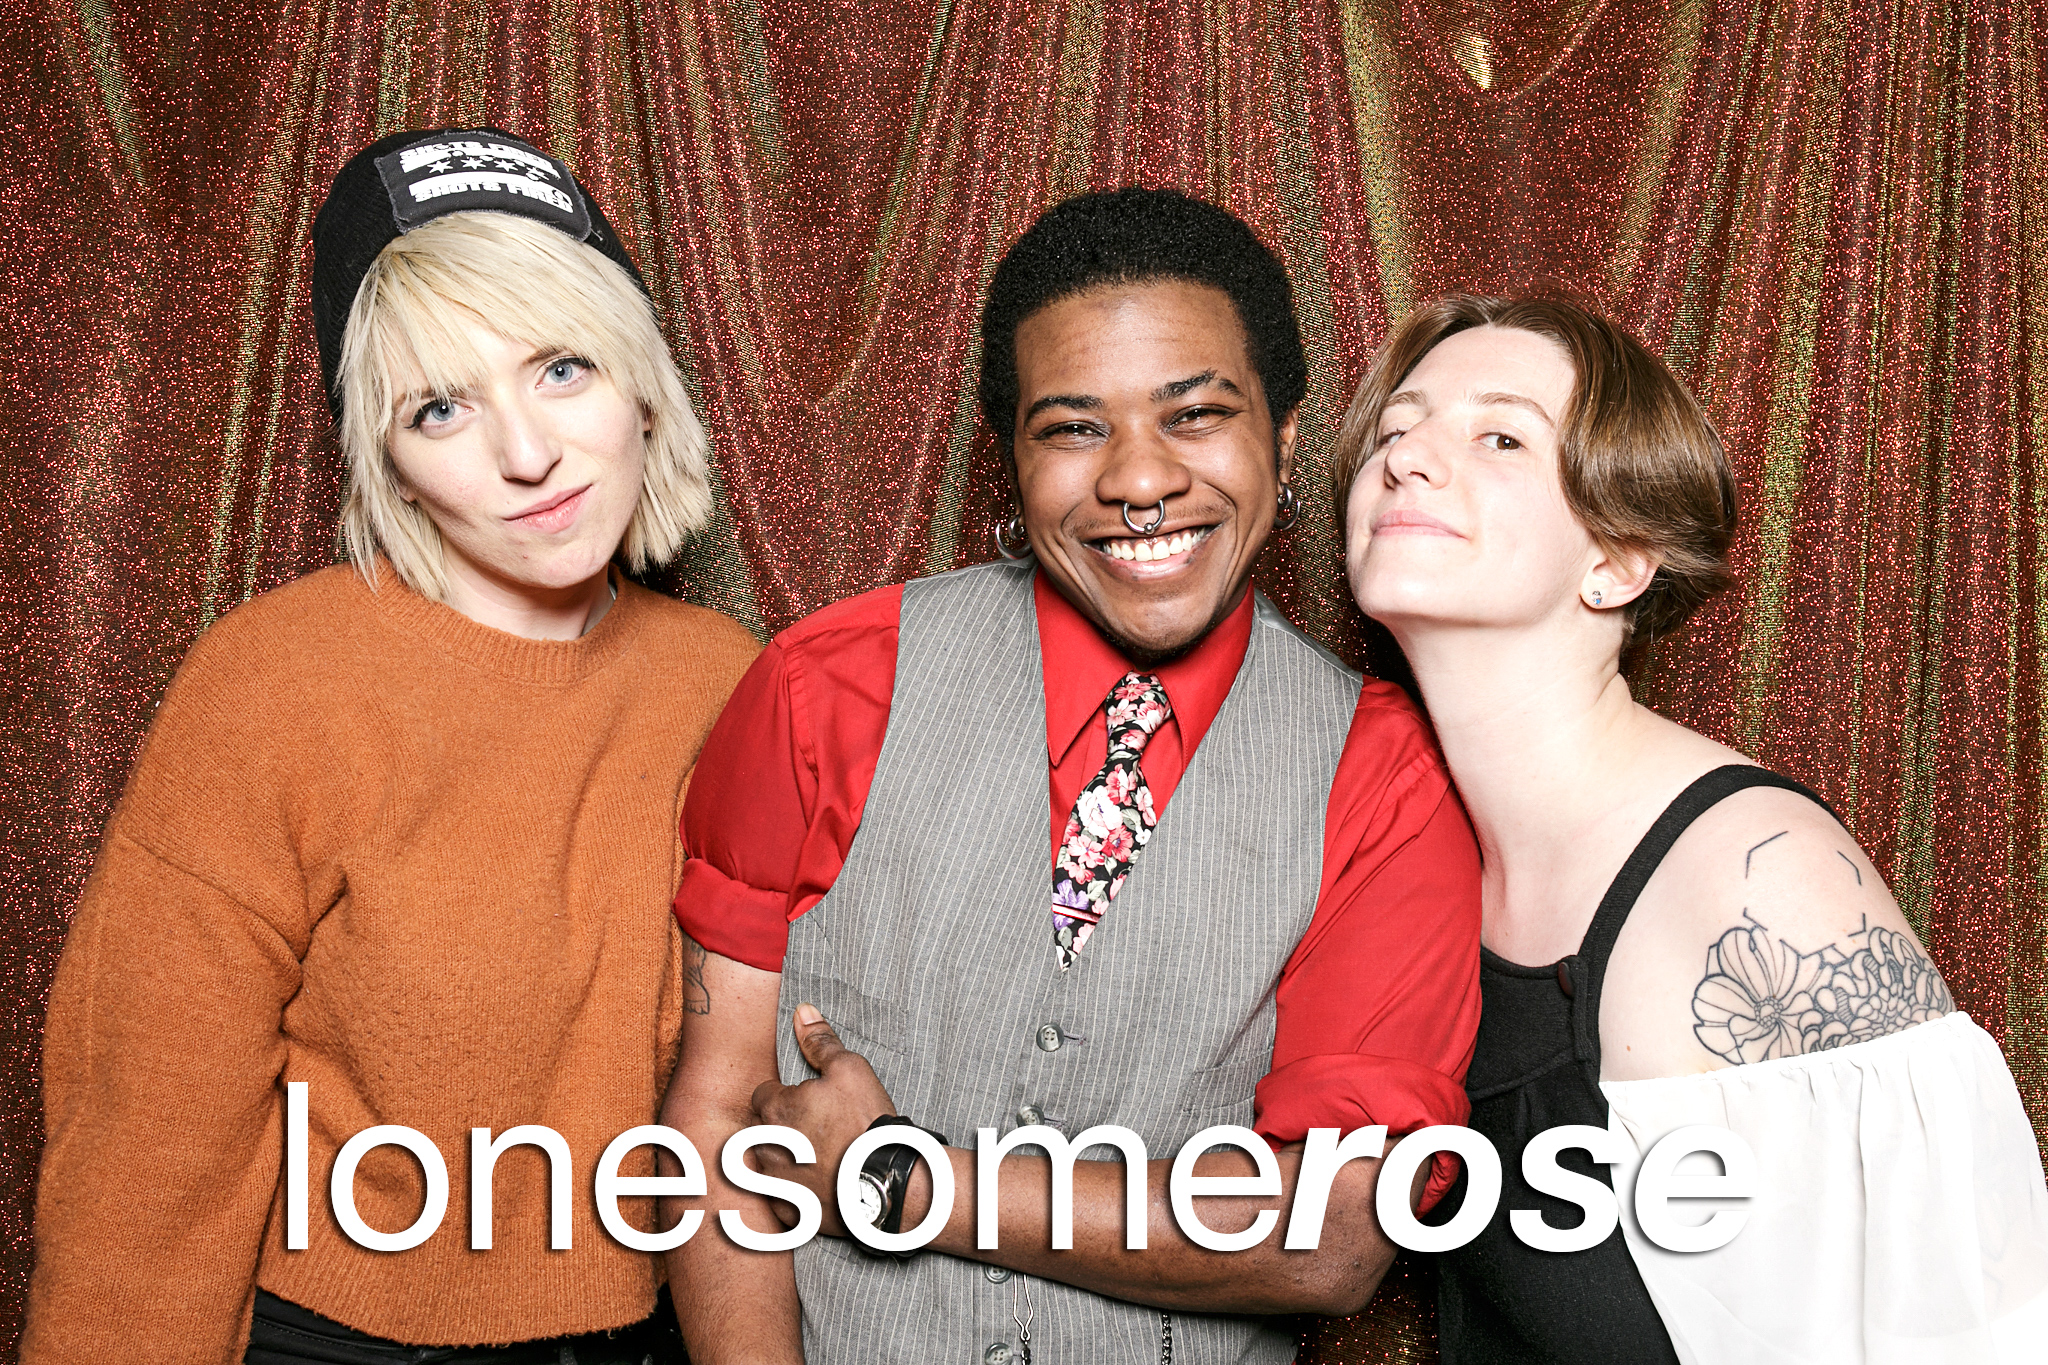 glitterguts portrait booth photos from the lonesome rose employee party, chicago 2020